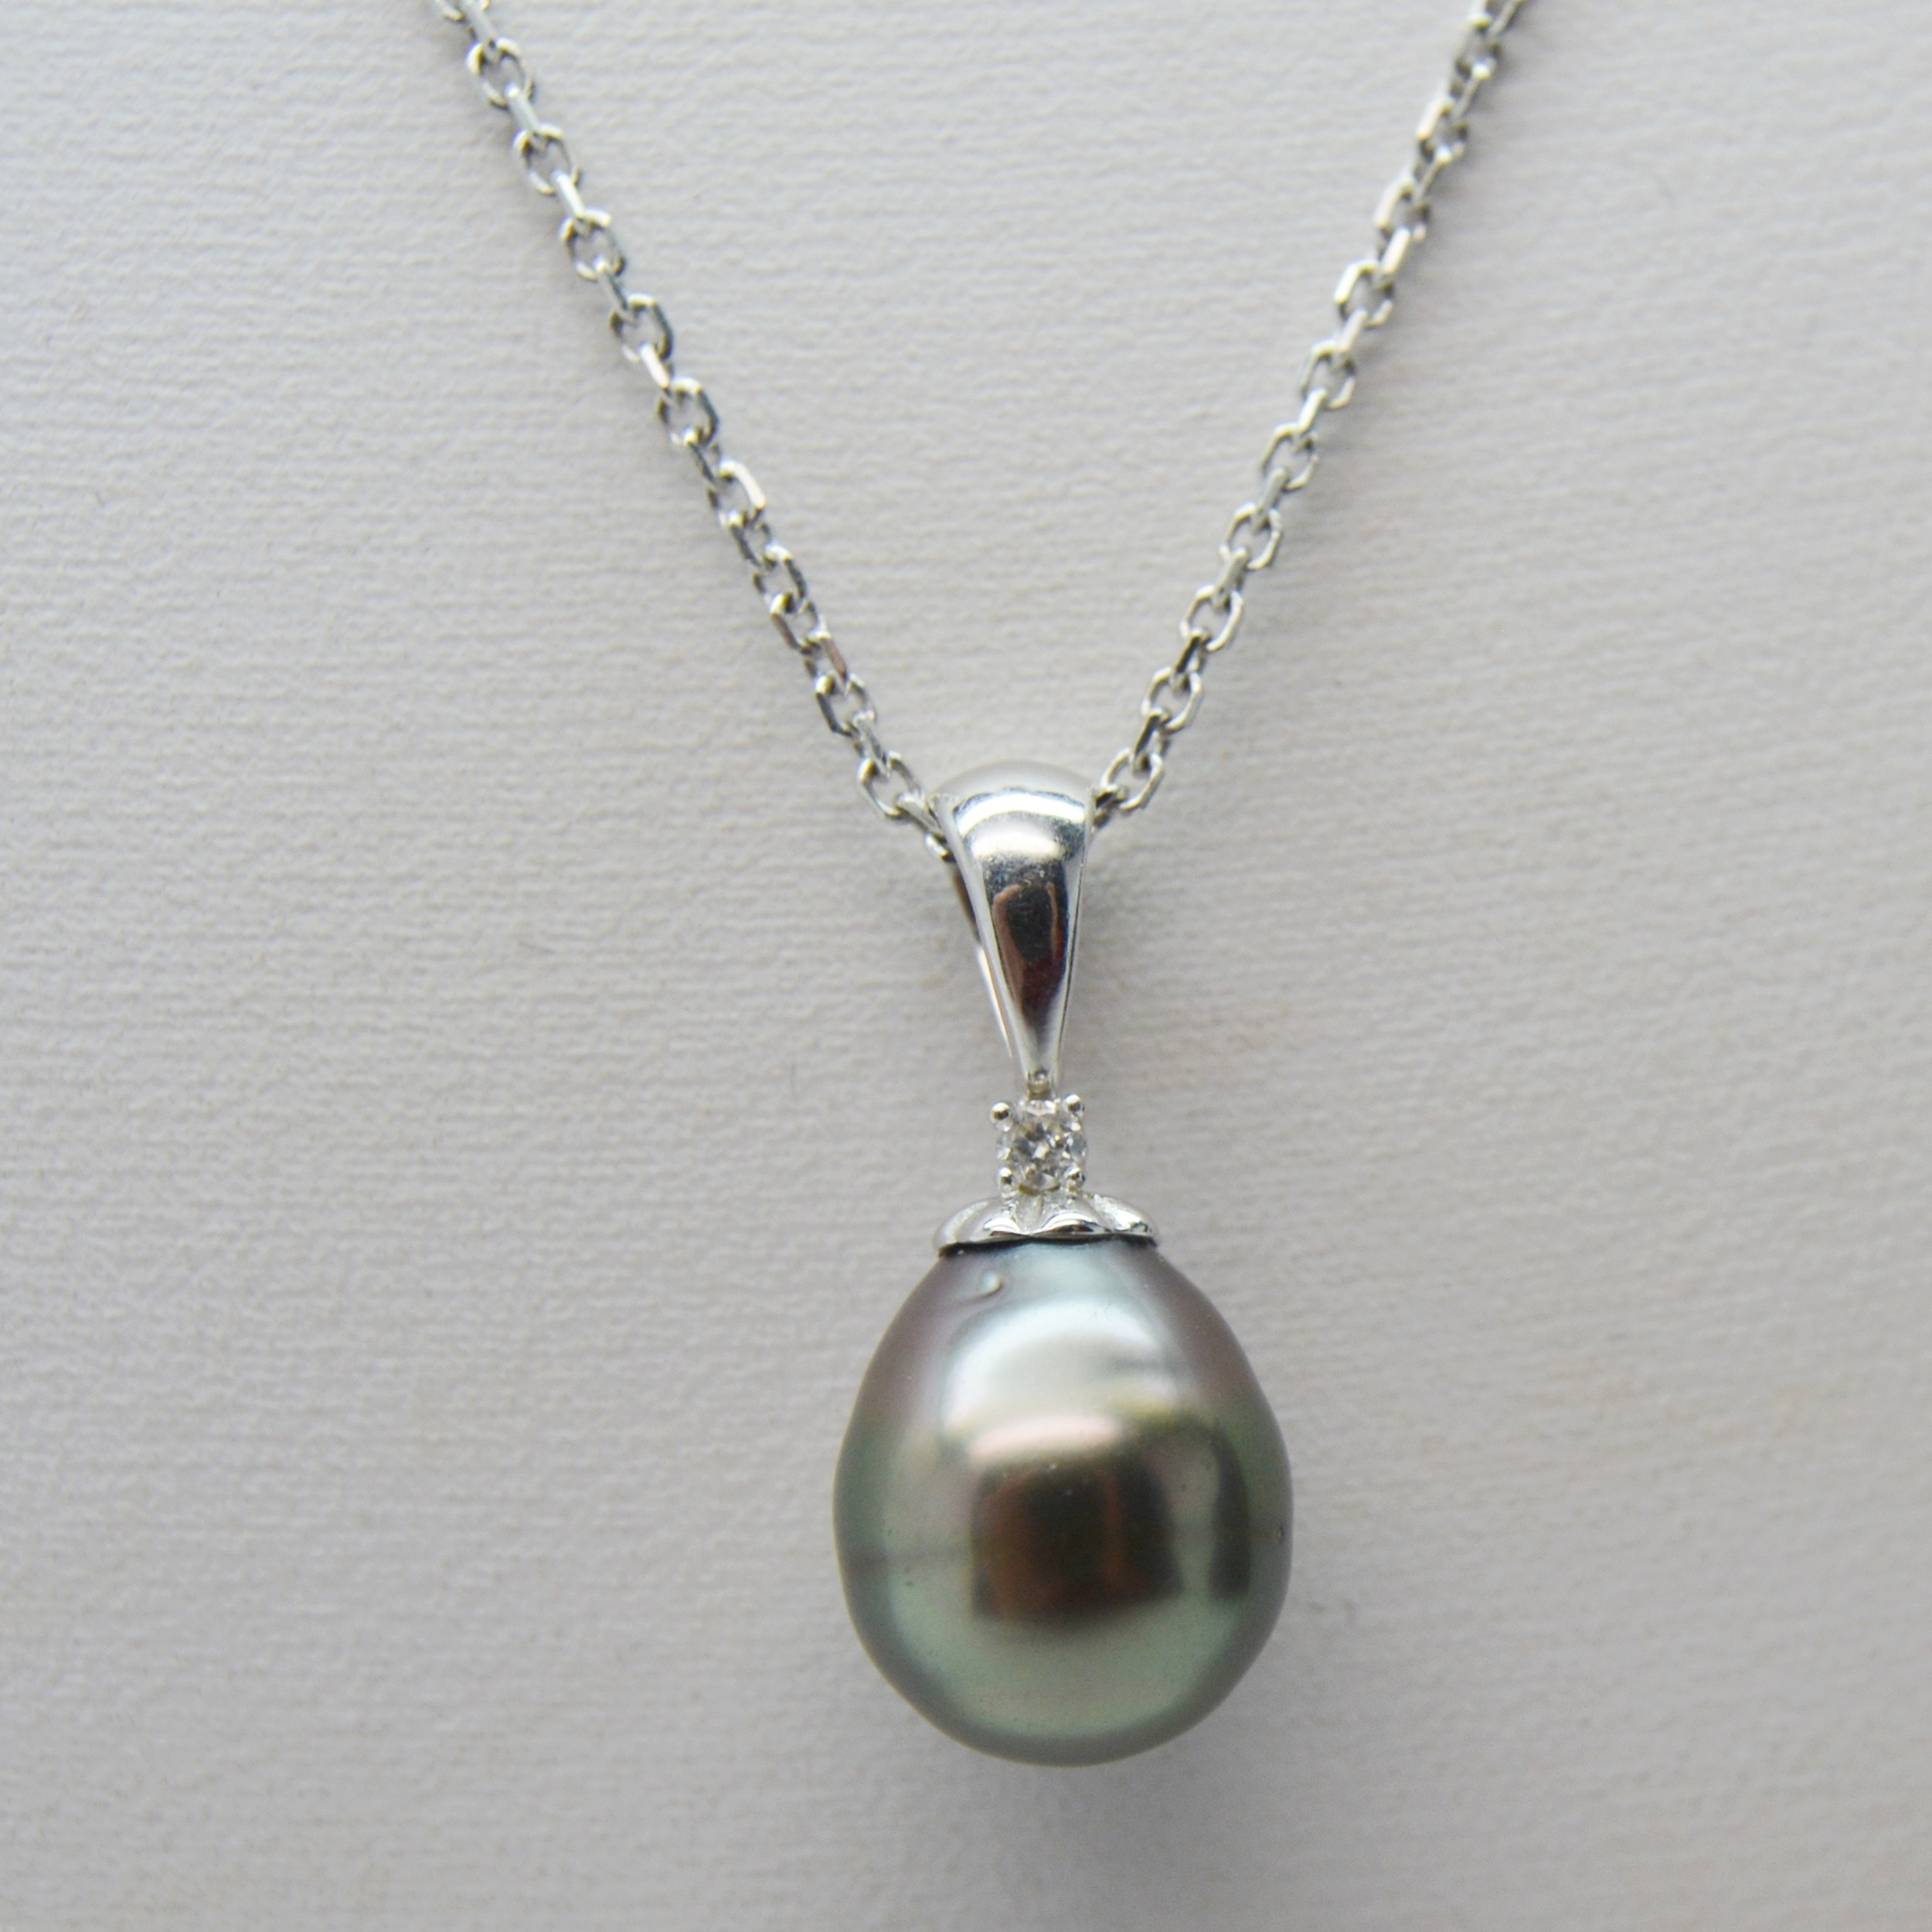 14K White Gold Cultured Pearl Pendant Necklace